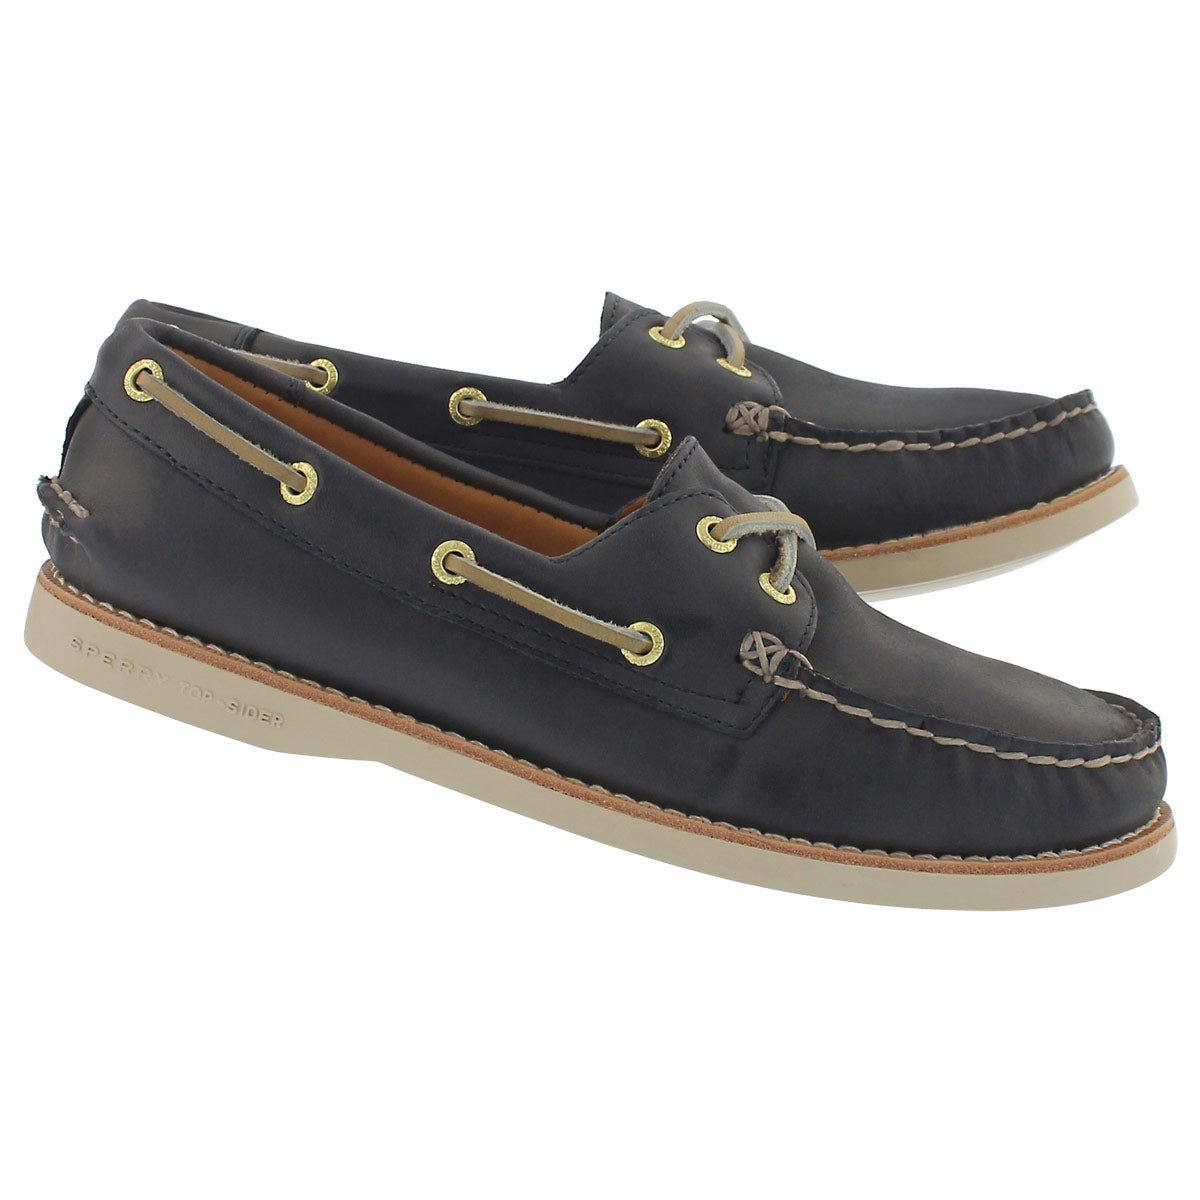 Lds Gold Cup A/O navy boat shoe